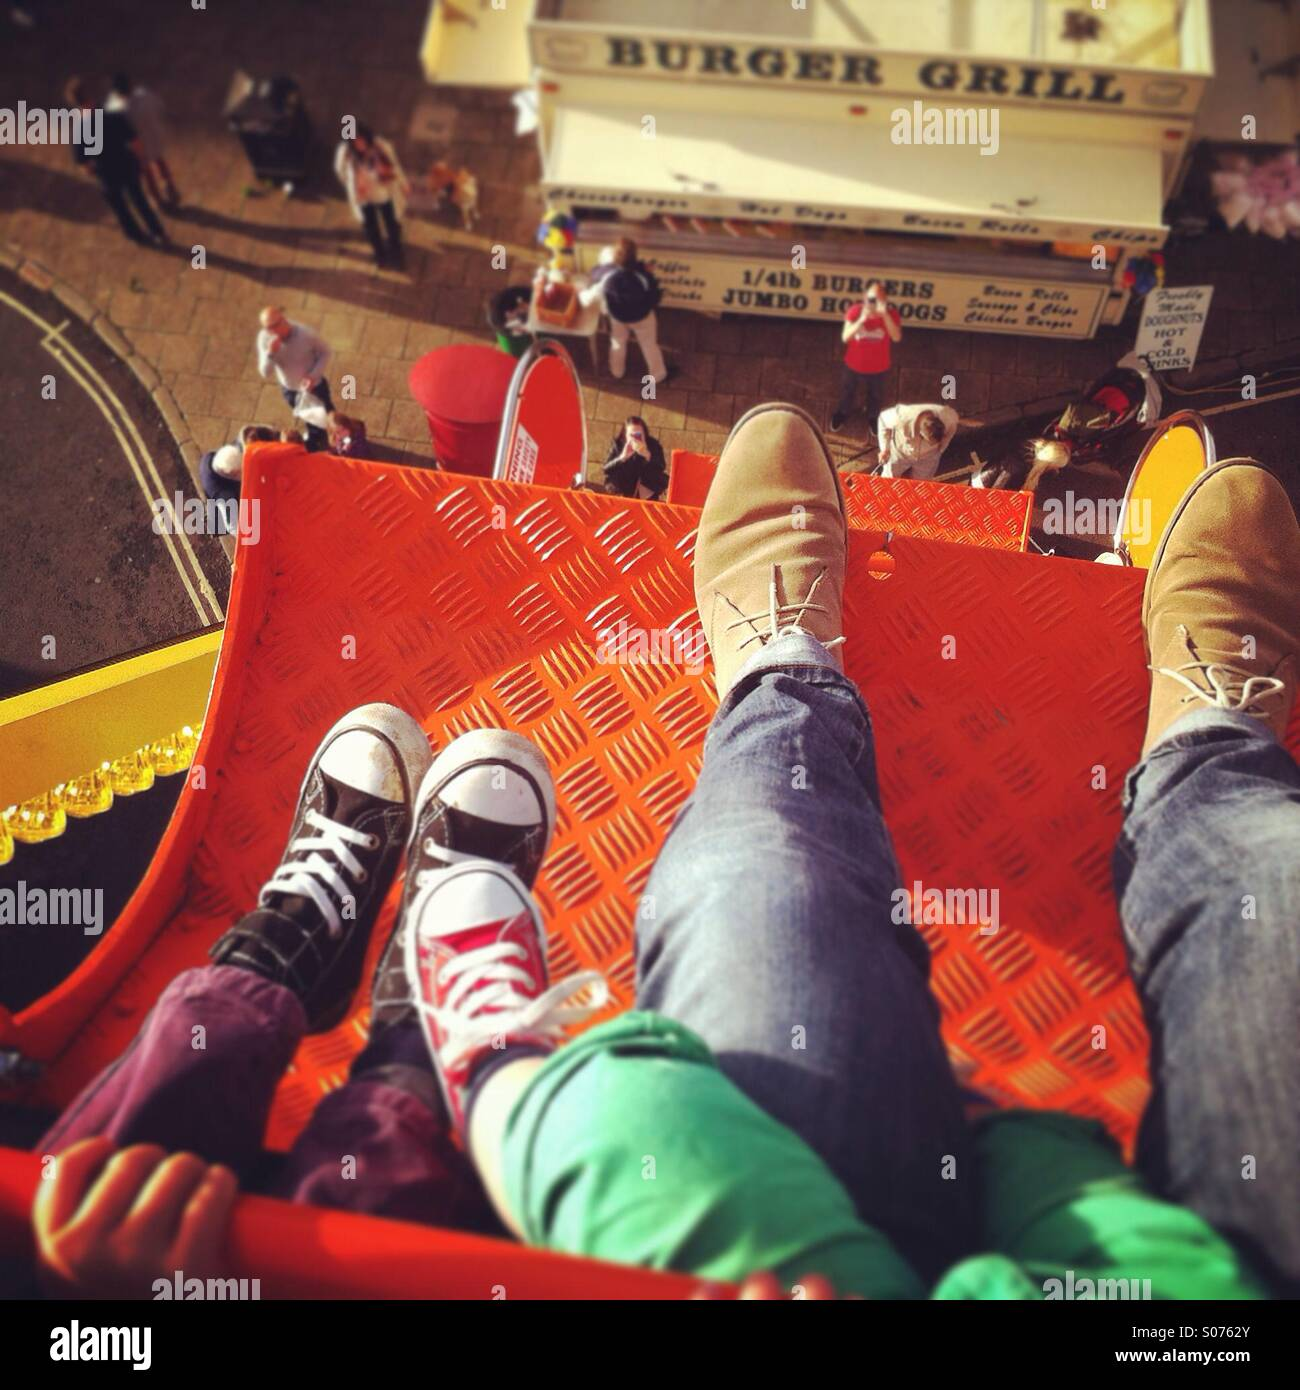 Don't look down! Stock Photo